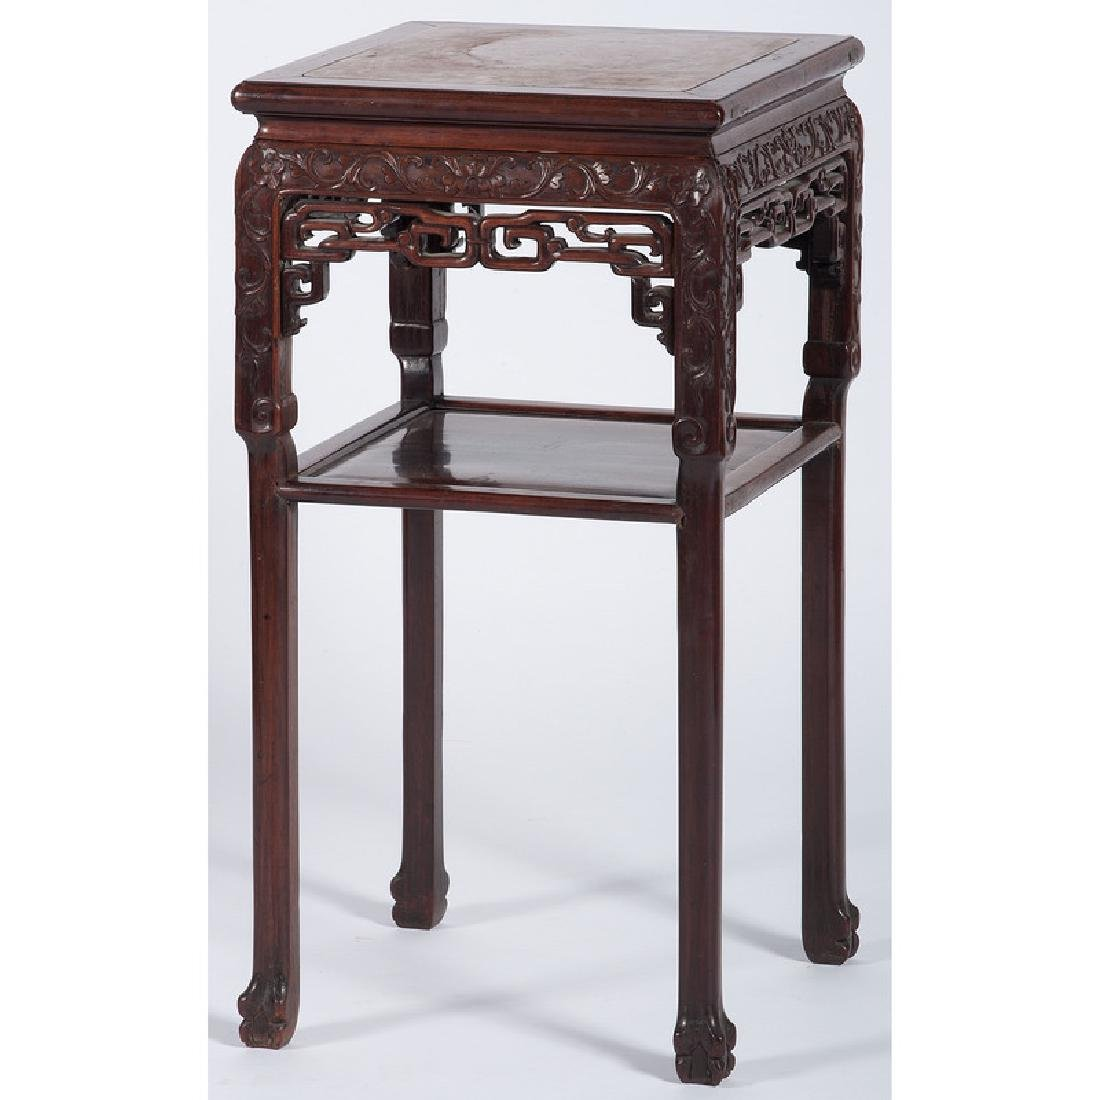 Chinese Carved Hardwood Tea Table with Marble Top - 2